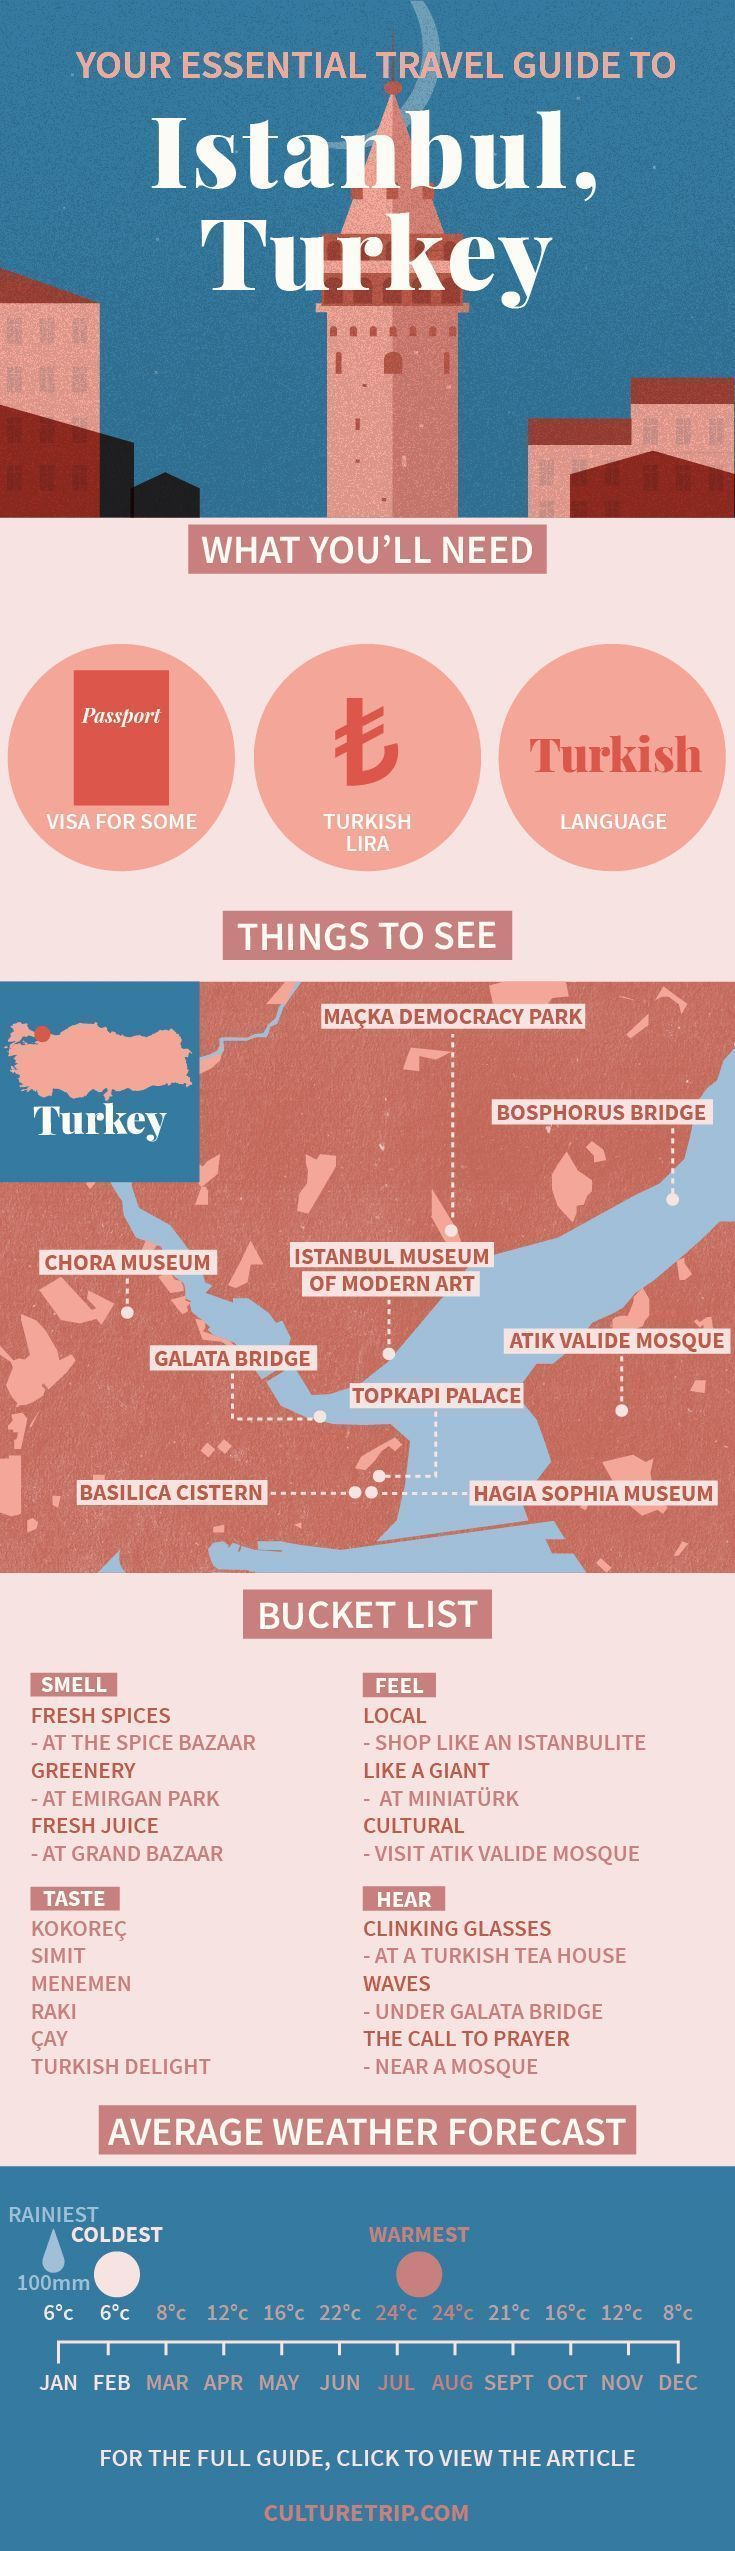 Your Essential Travel Guide to Istanbul (Infographic) | Istanbul, Turkey, weekend break, Europe, bucket list, wanderlust, adventure, challenge, coffee, bar, food, must try, Summer, Beach, Middle East, Tea, Ankara. #travelinfographic